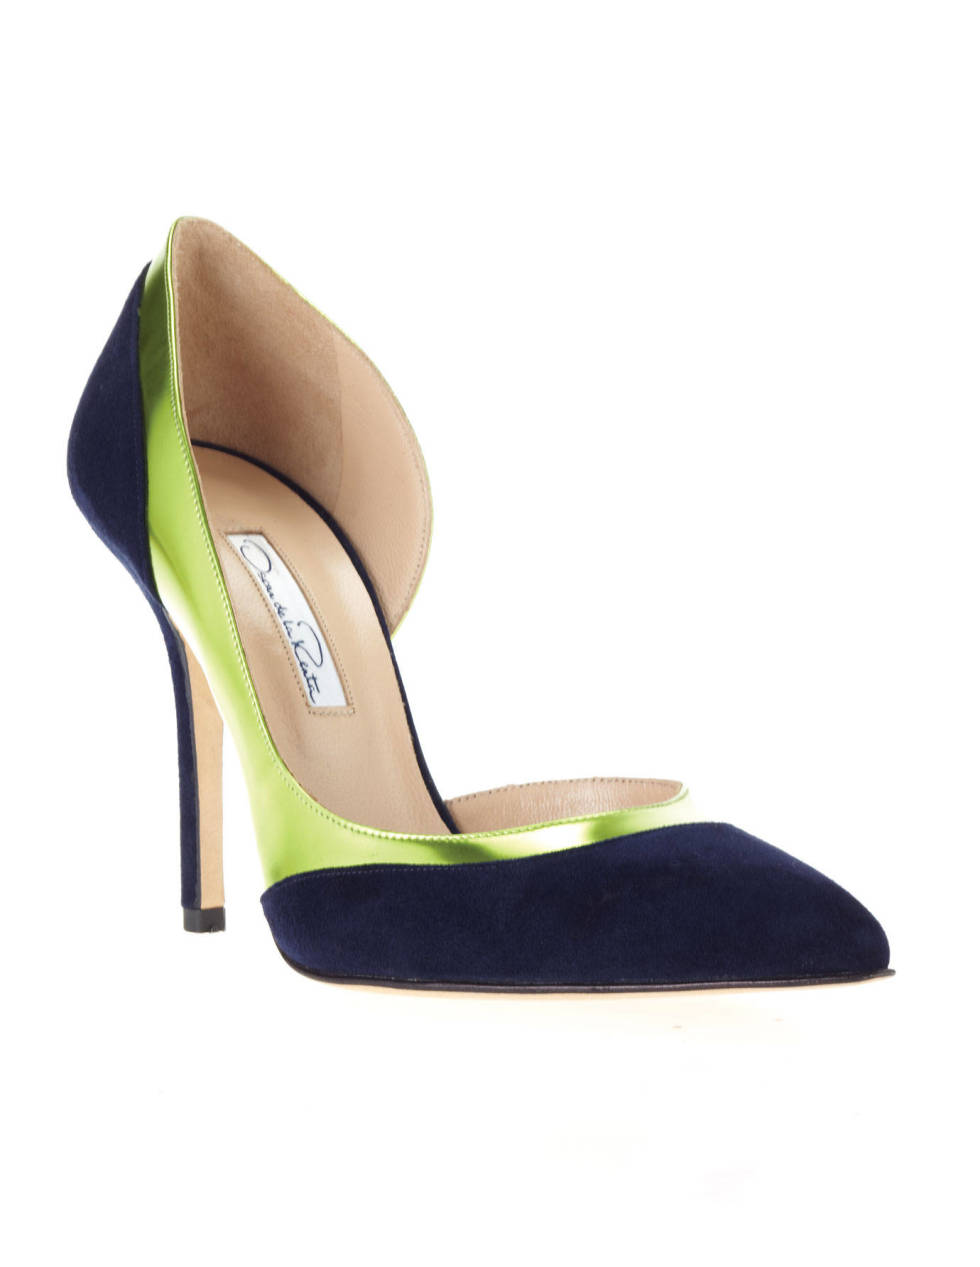 18 Preppy Shoes For Women